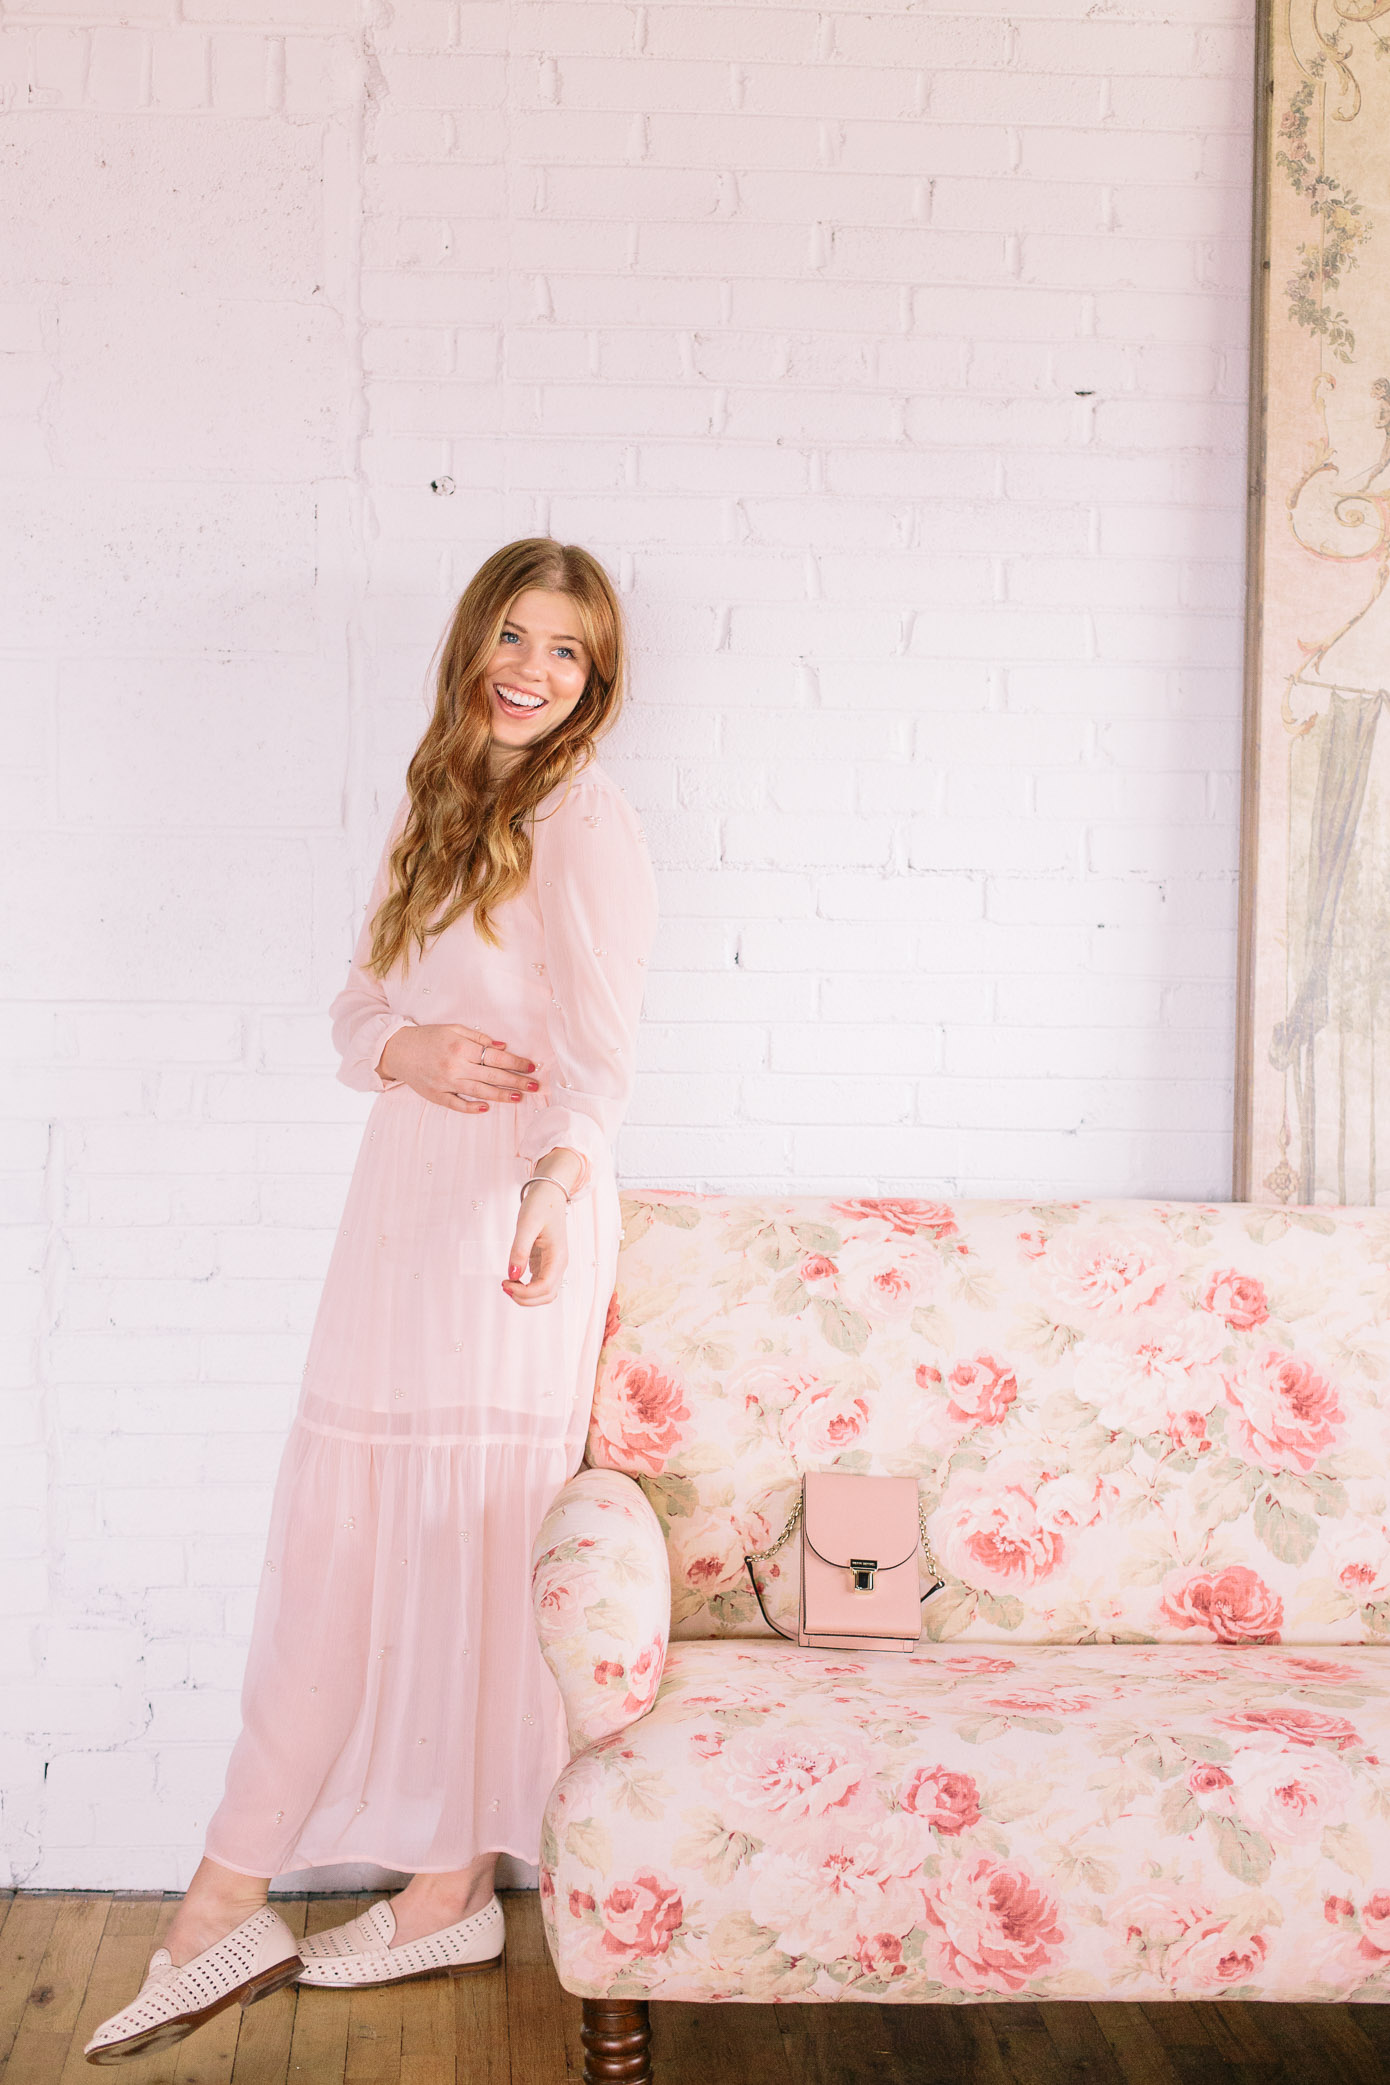 Pearl Embellished Blush Midi Dress | Louella Reese Life & Style Blog